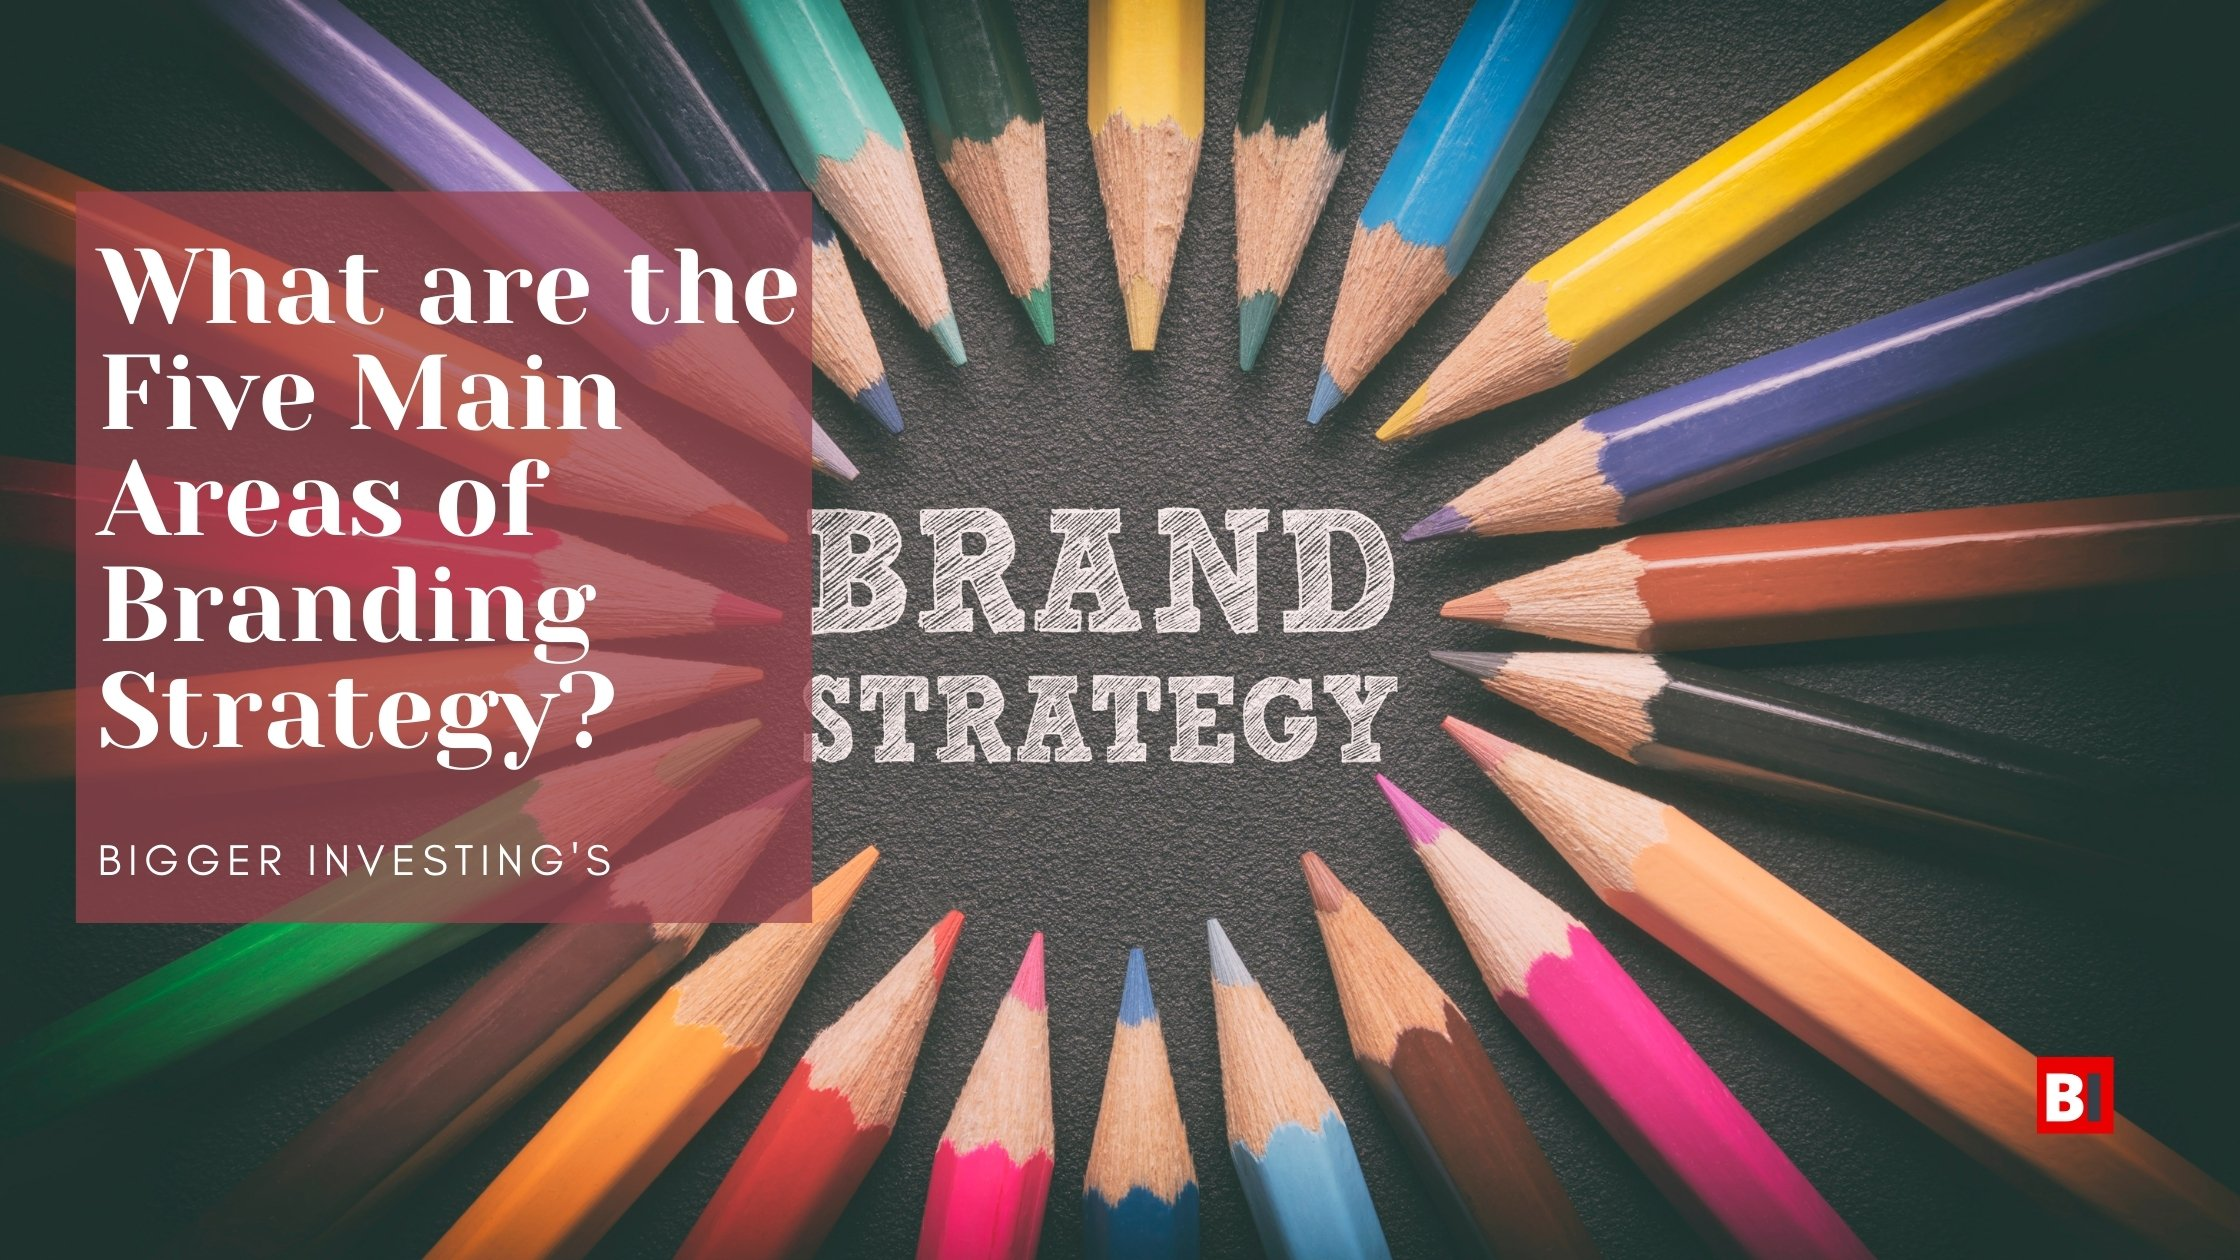 What are the Five Main Areas of Branding Strategy?